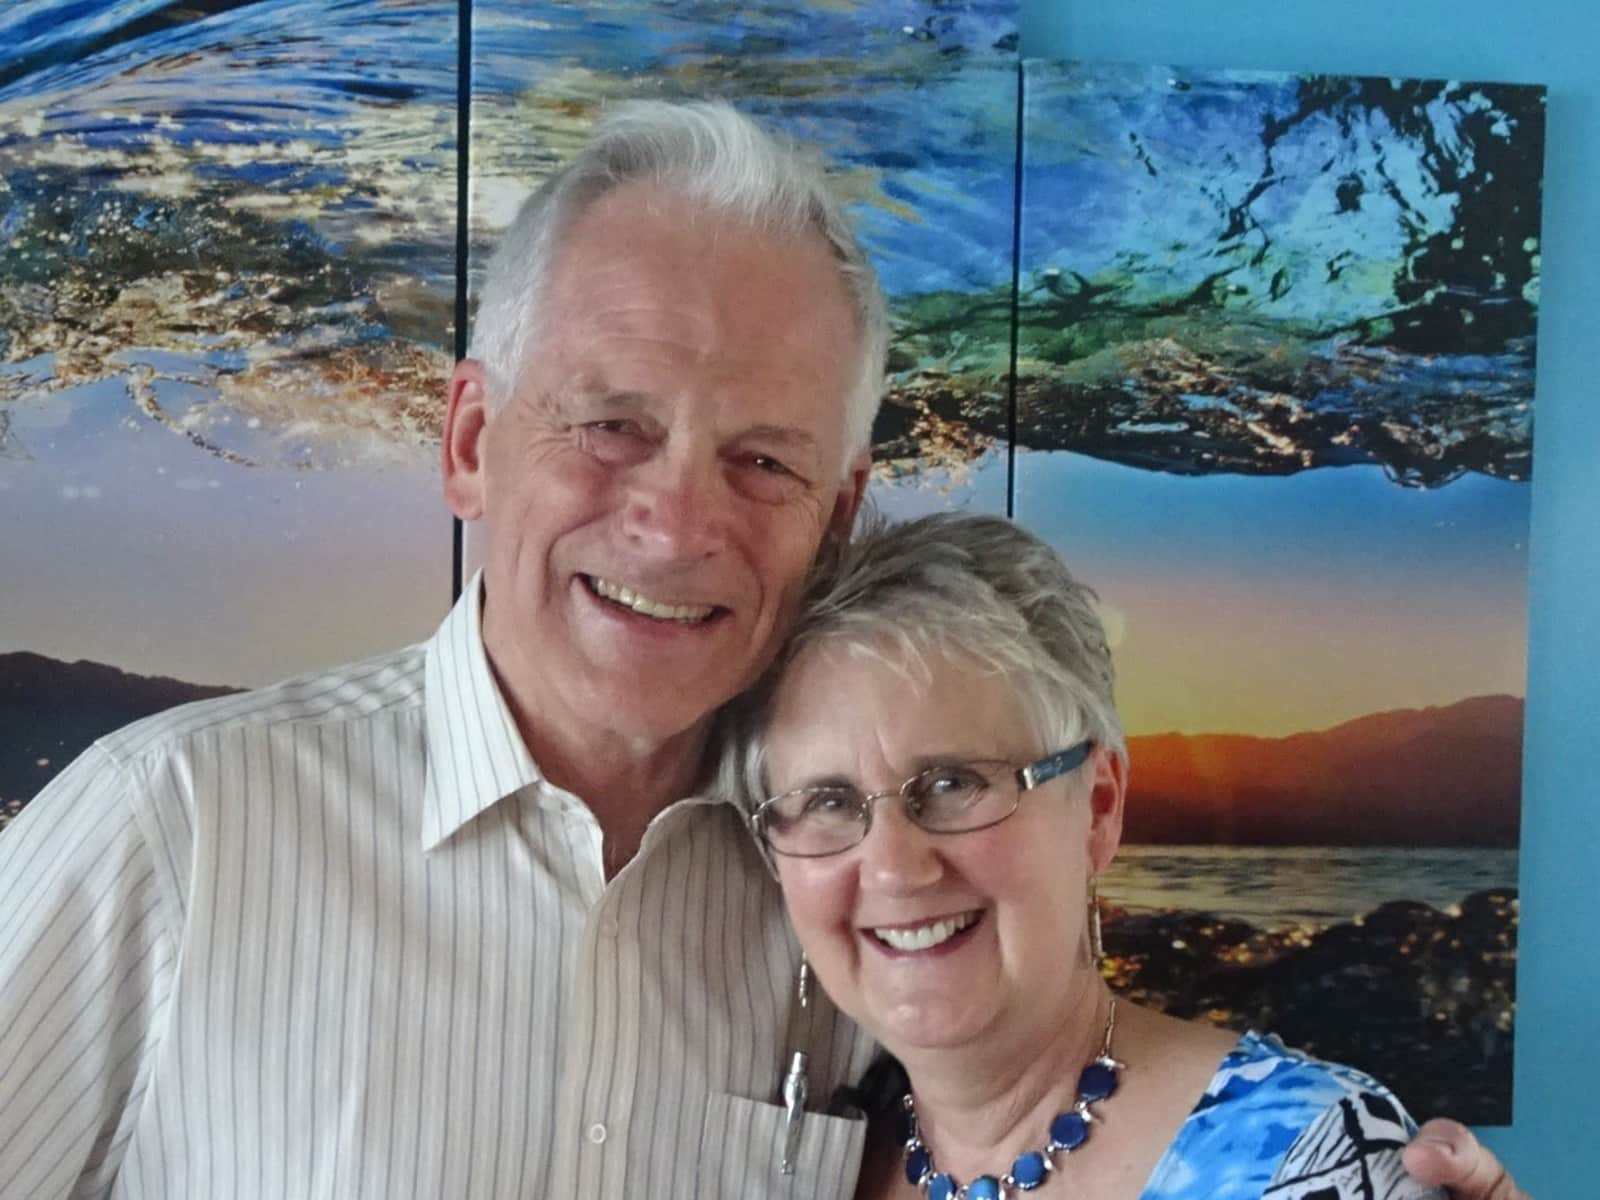 Peter & Dianne from Pender Island, British Columbia, Canada